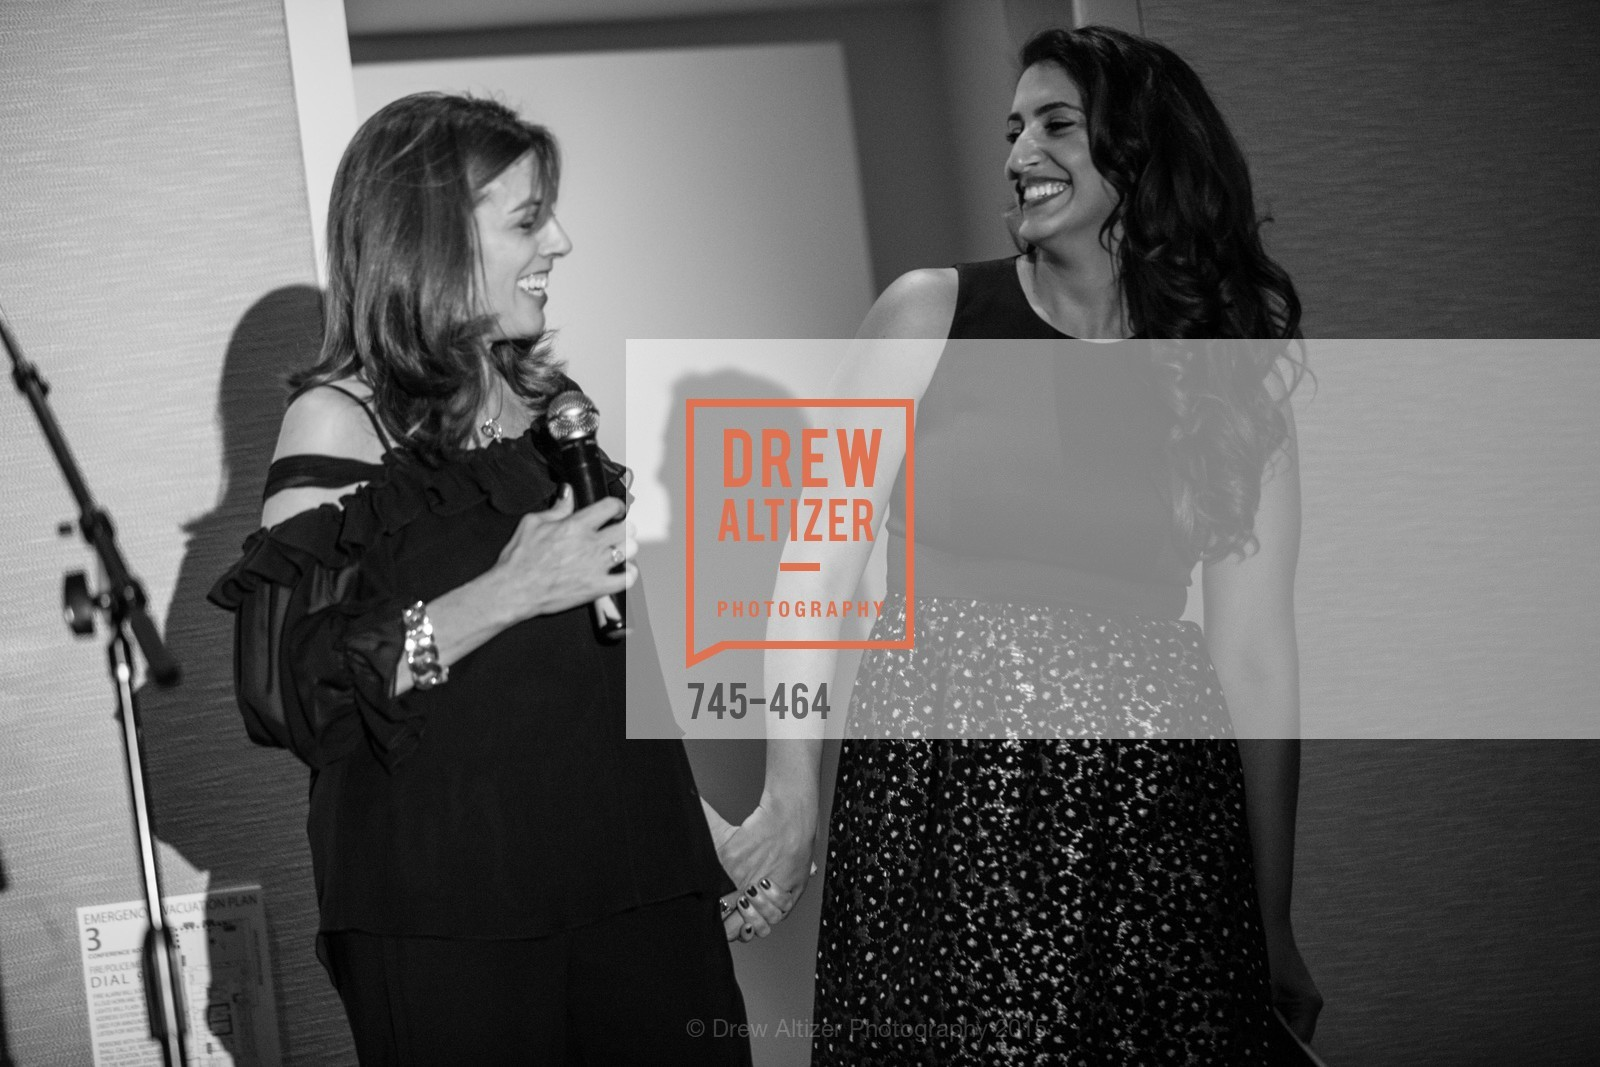 Lisa Lori, Sara Agah Franti, Operation Smile Presents THE SAN FRANCISCO 2015 SMILE GALA, InterContinental Hotel, November 7th, 2015,Drew Altizer, Drew Altizer Photography, full-service agency, private events, San Francisco photographer, photographer california